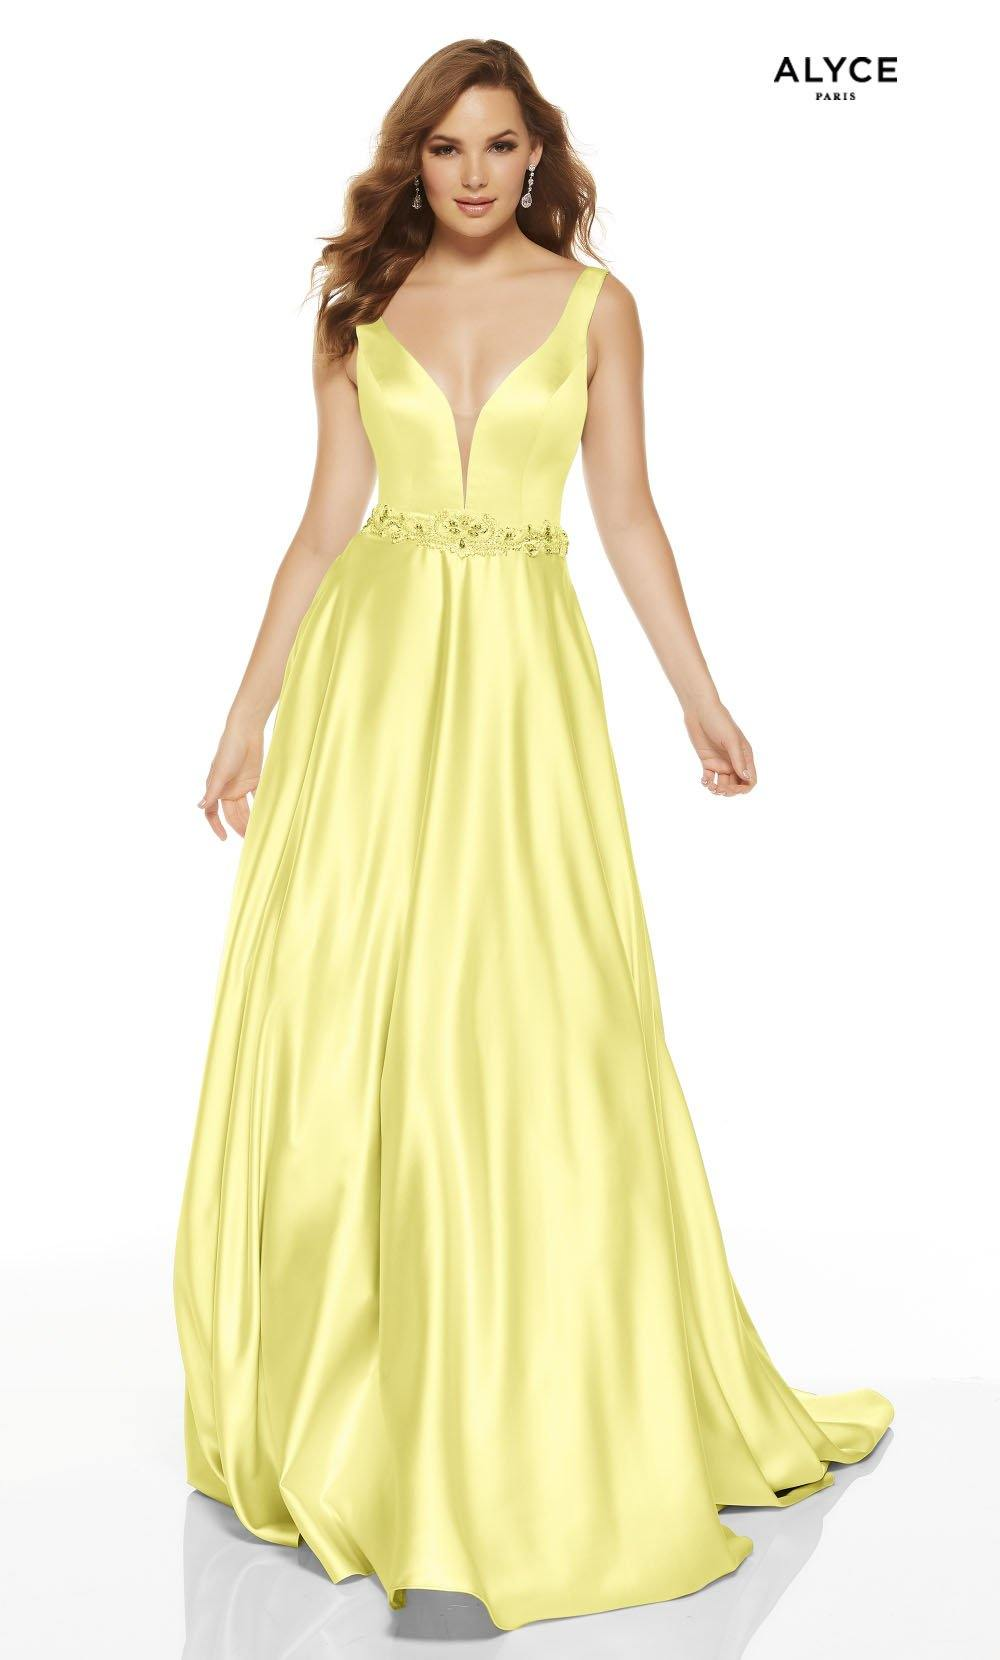 Light Yellow luminous satin A line formal dress with a plunging neckline and beaded natural waistline